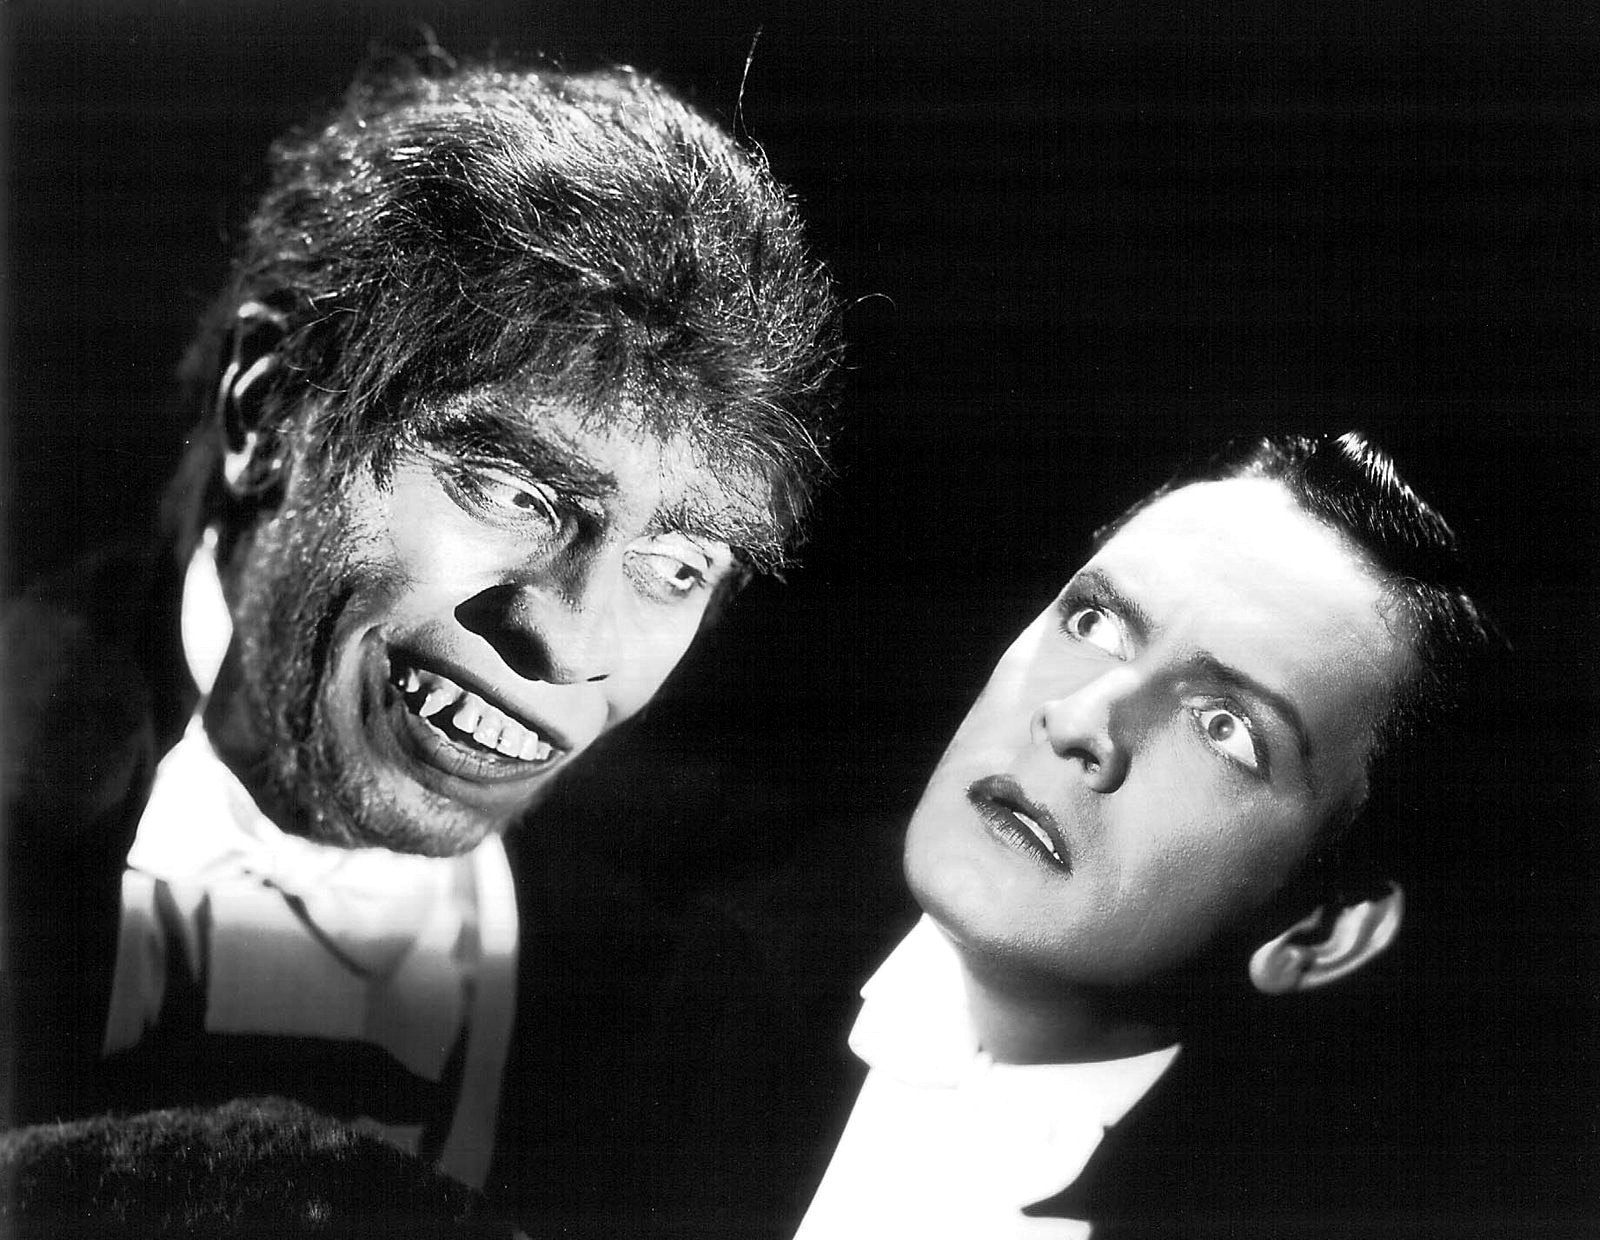 The strange case of dr jekyll and mr hyde 2019 online dating